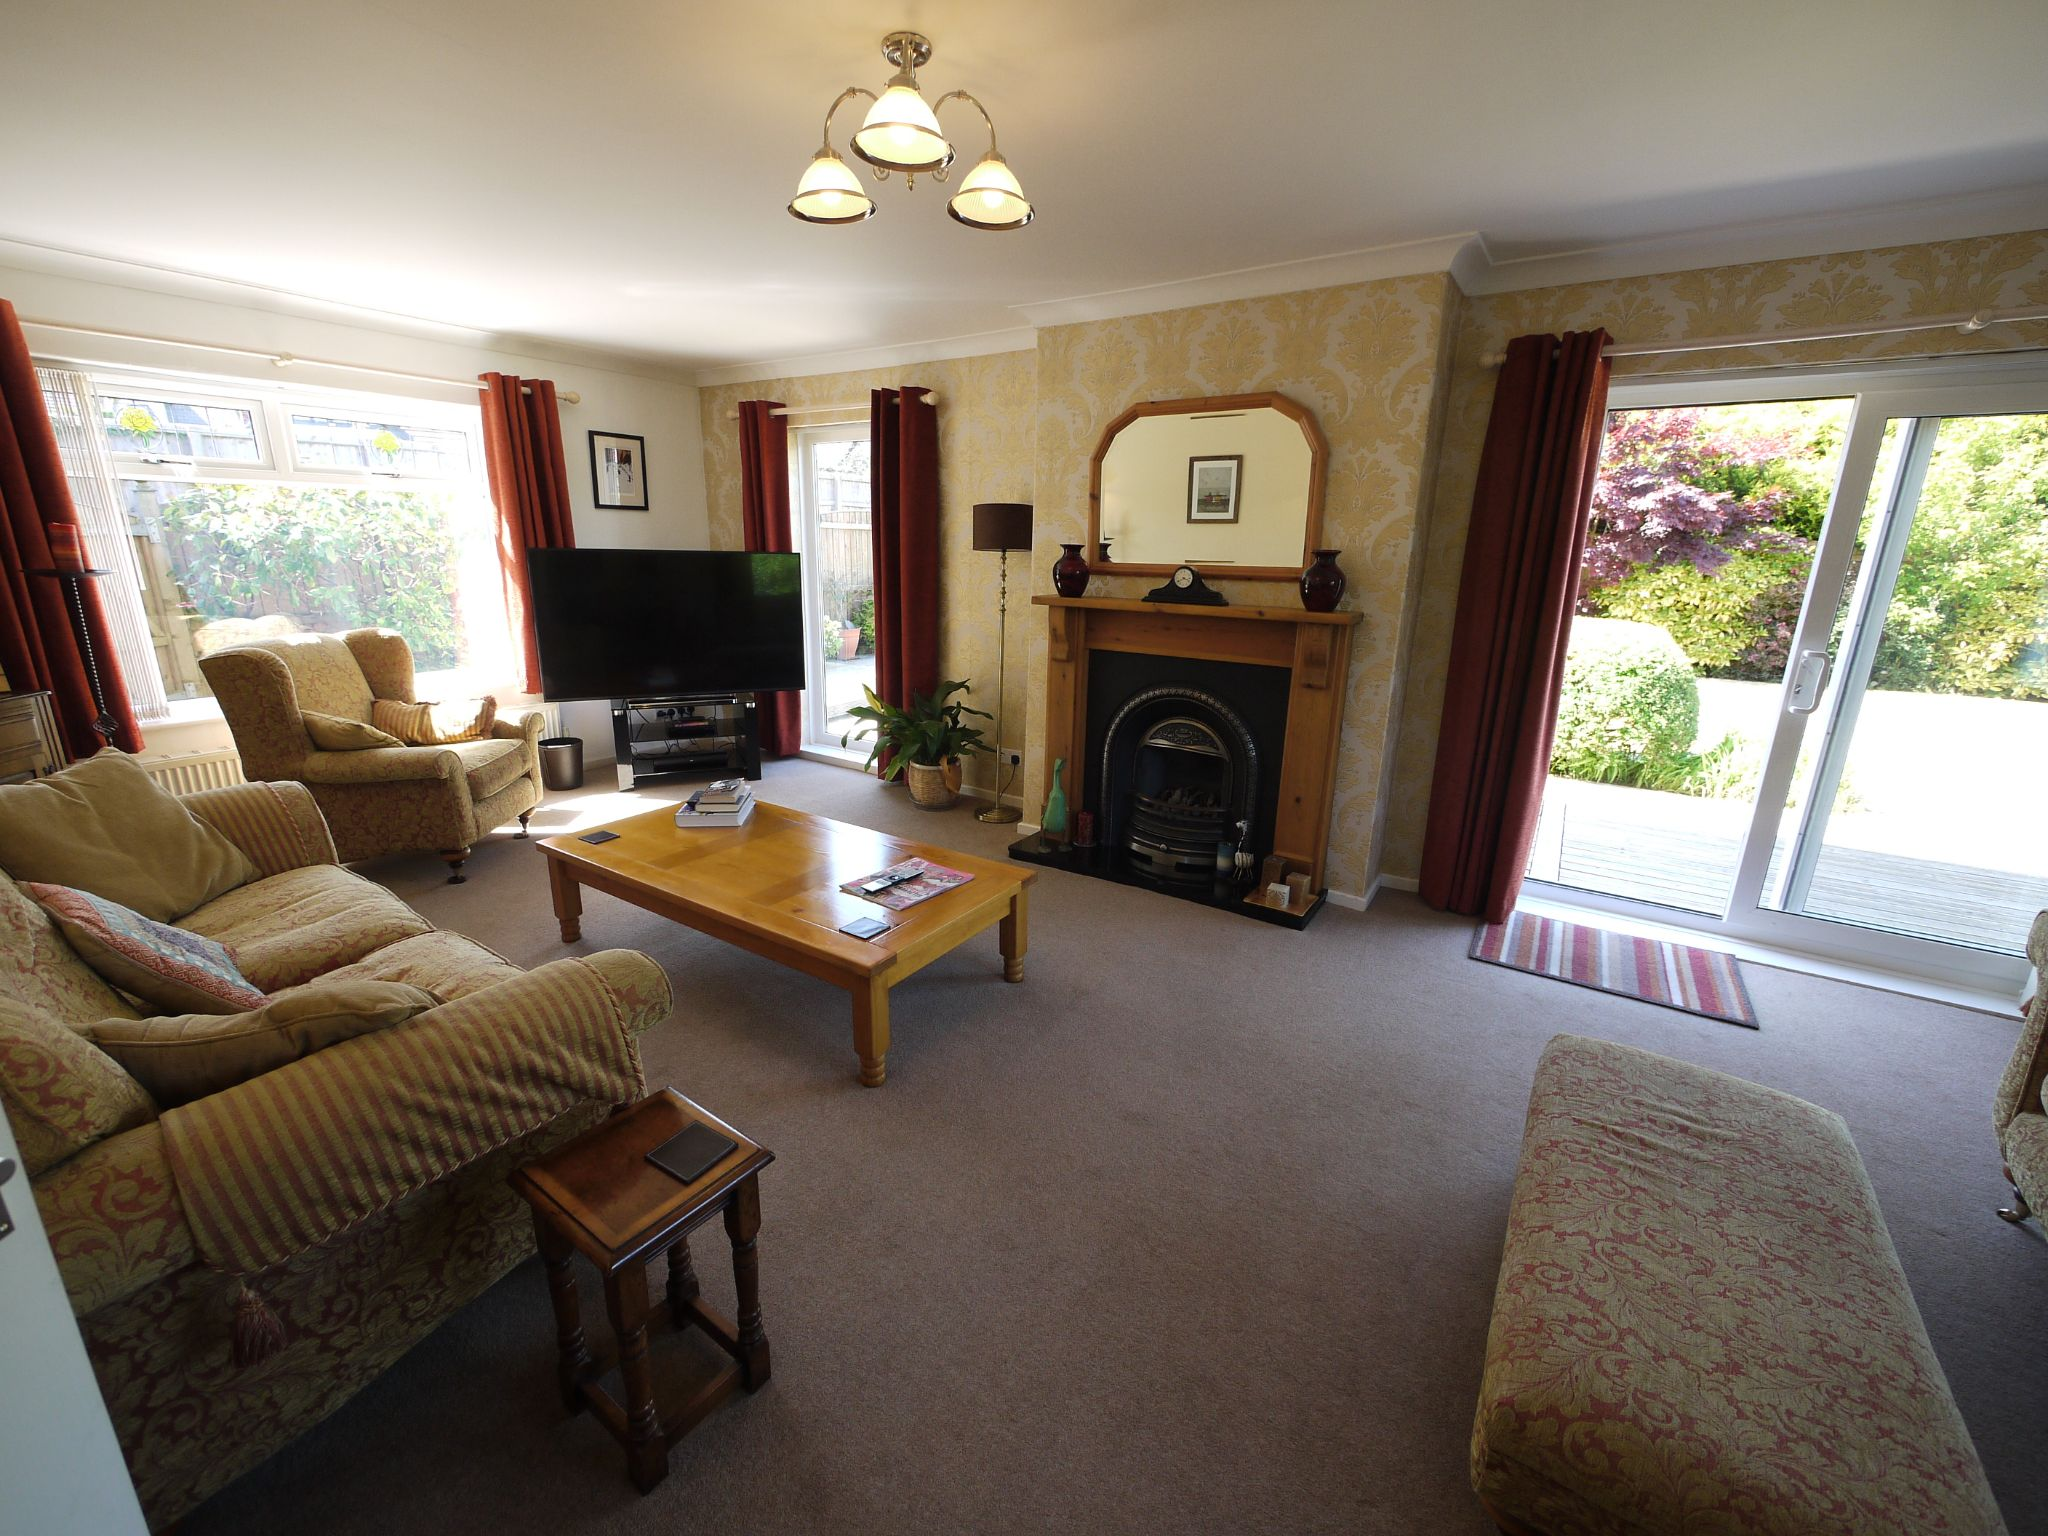 5 bedroom detached house SSTC in Brighouse - Lounge.